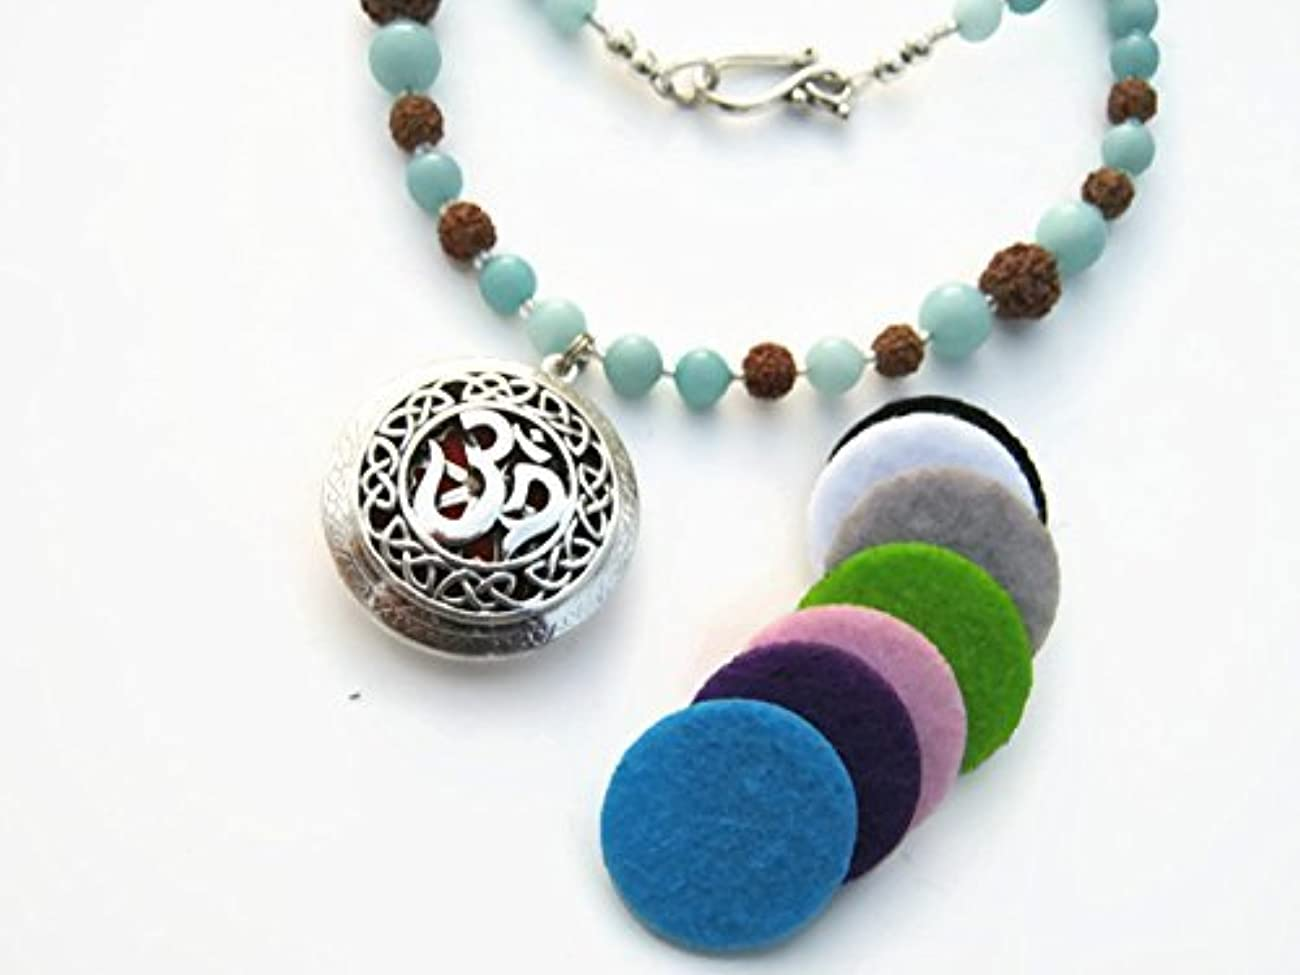 芸術護衛戸口Om Essential Oil Diffuser Necklace 23 Aqua Jade Gemstone Necklace Bodhi Seed Mala Locket Necklace [並行輸入品]